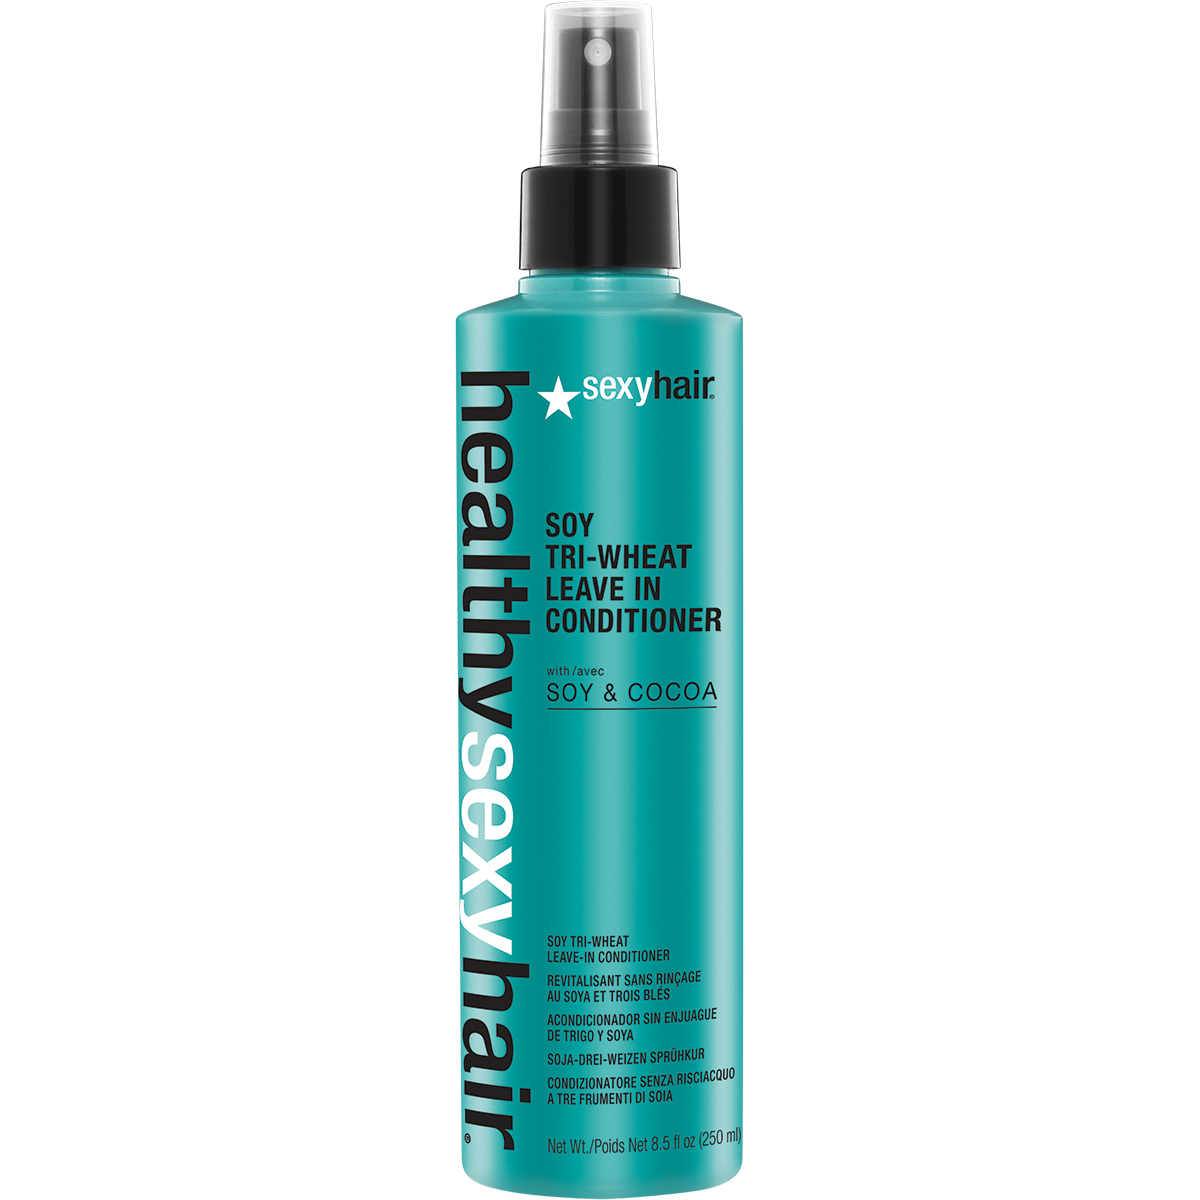 Sexy Hair Healthy Sexy Hair Soy Tri-Wheat Leave-In Conditioner